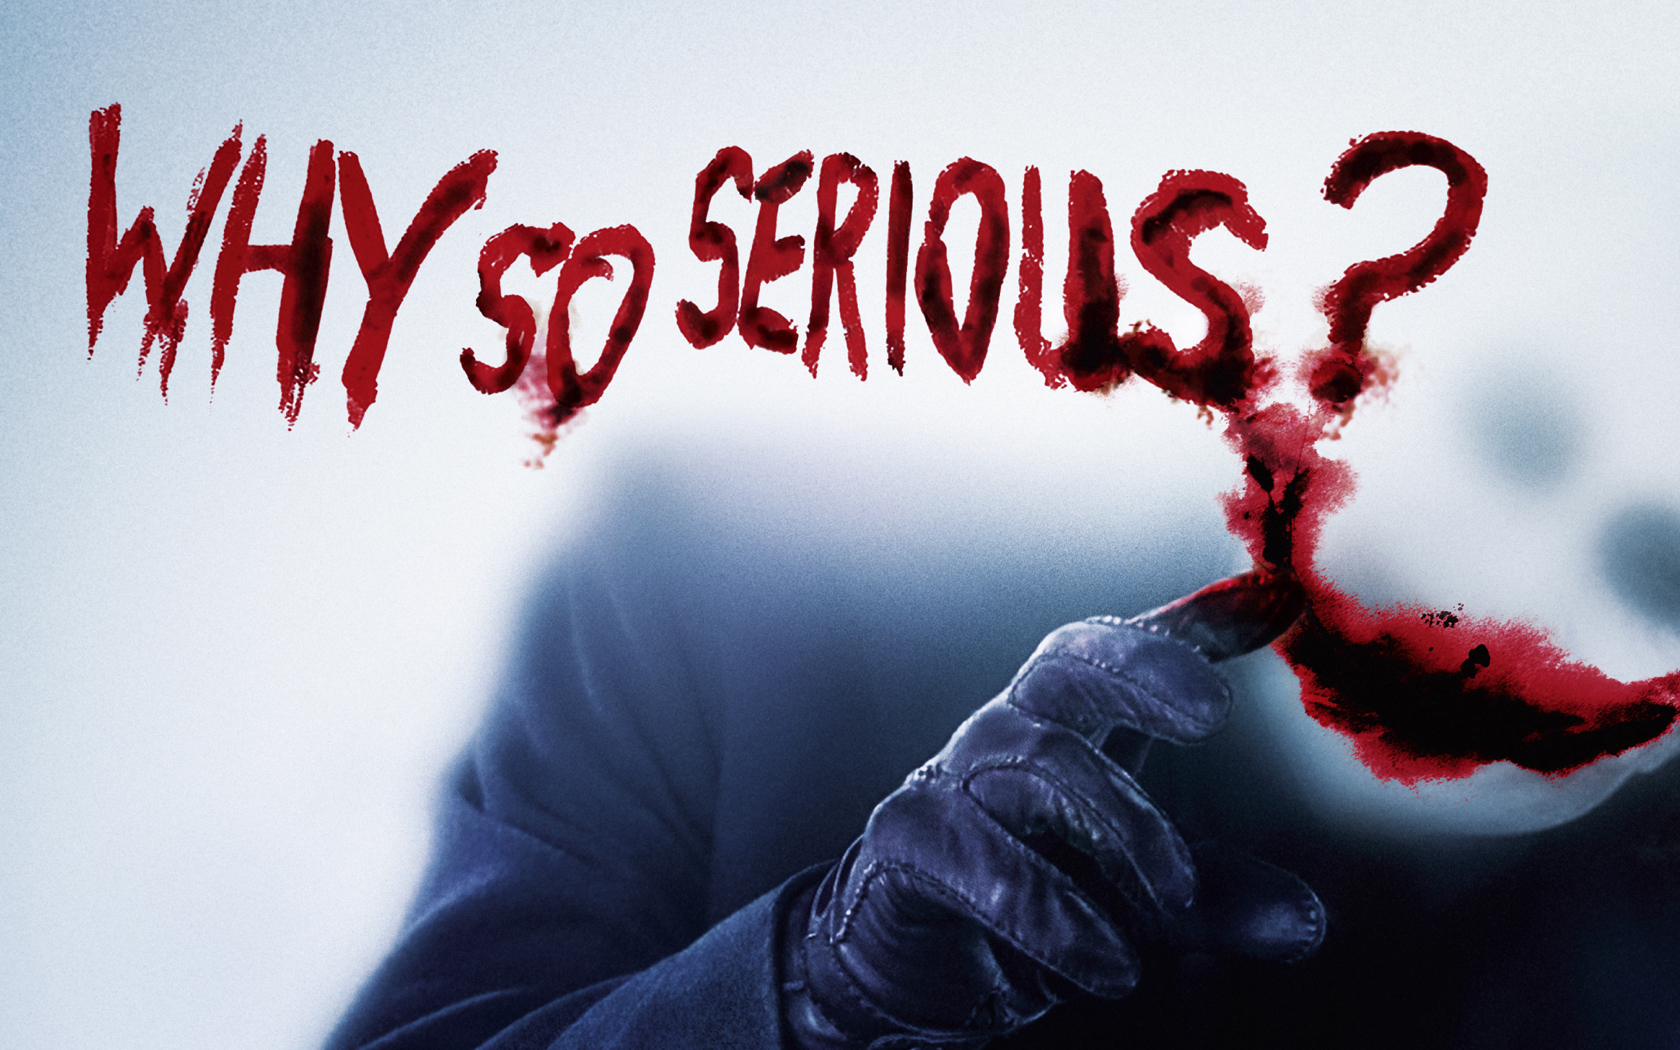 Why So Serious Wallpaper